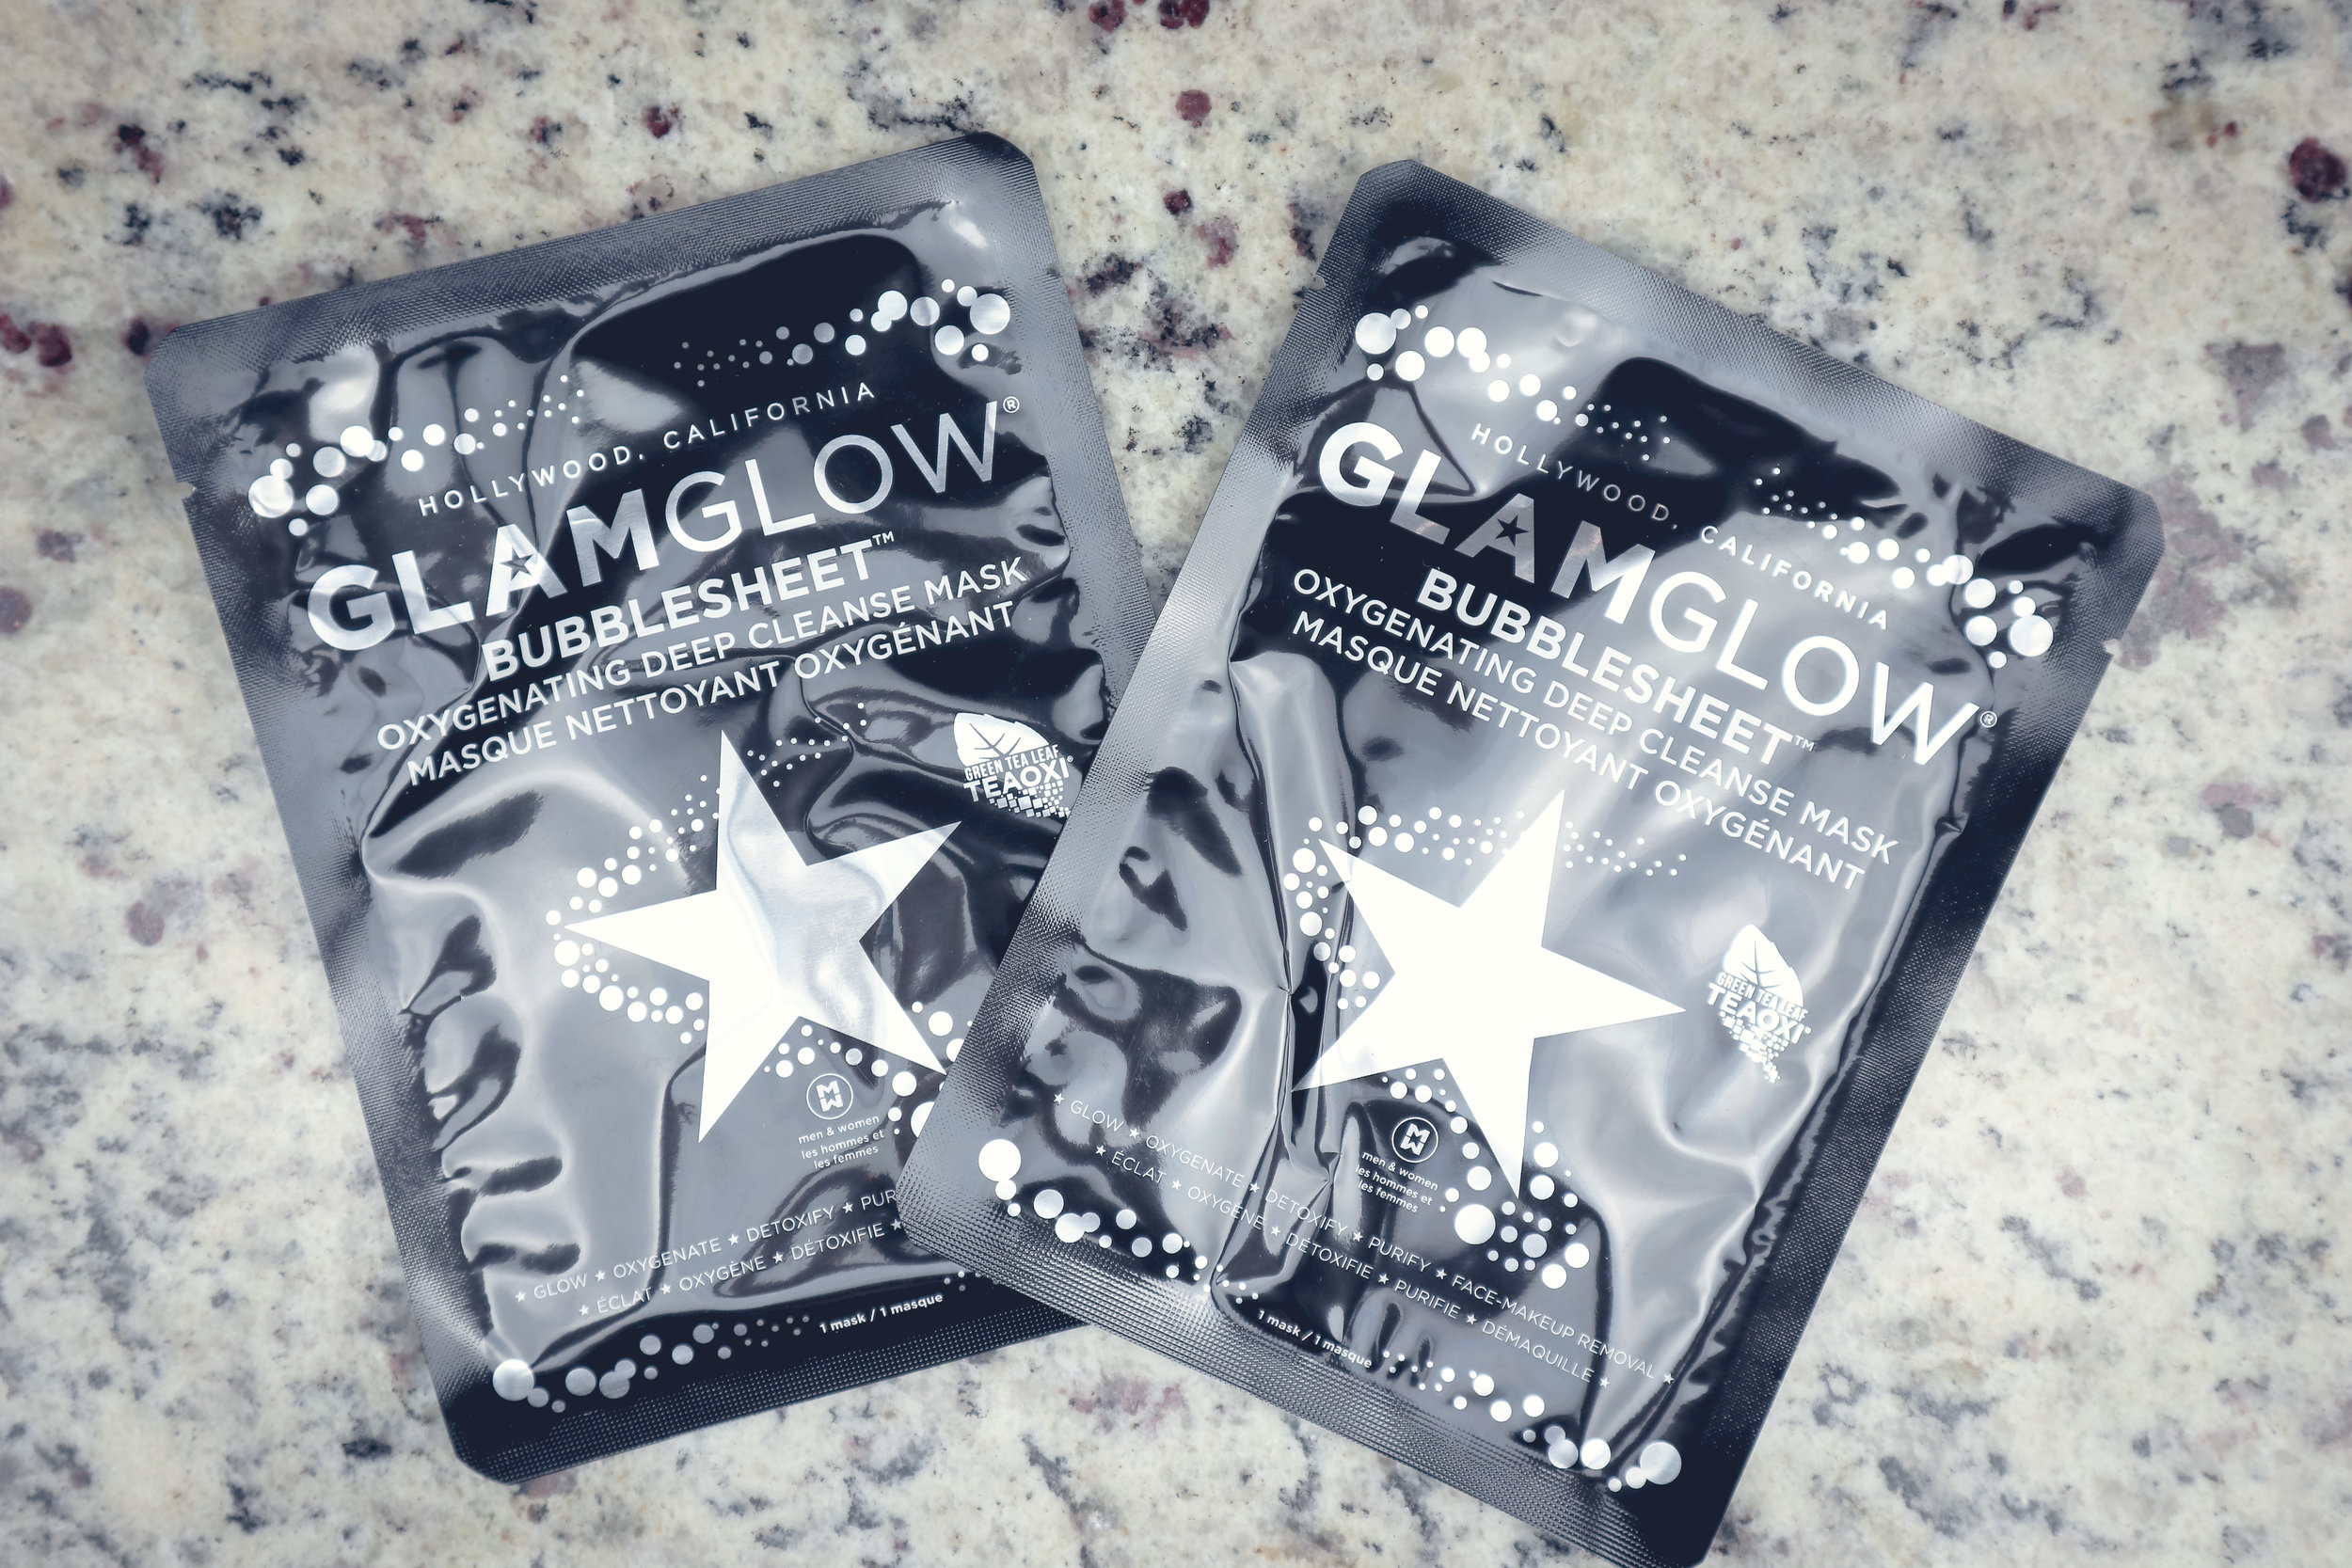 GLAMGLOW BUBBLESHEET OXYGENATING DEEP CLEANSE MASK ($19) - You're Invited to the Bubble Party! Get 3 BUBBLESHEET™ Oxygenating Deep Cleanse Masks in One Set, Only $19 ($27 Value)!